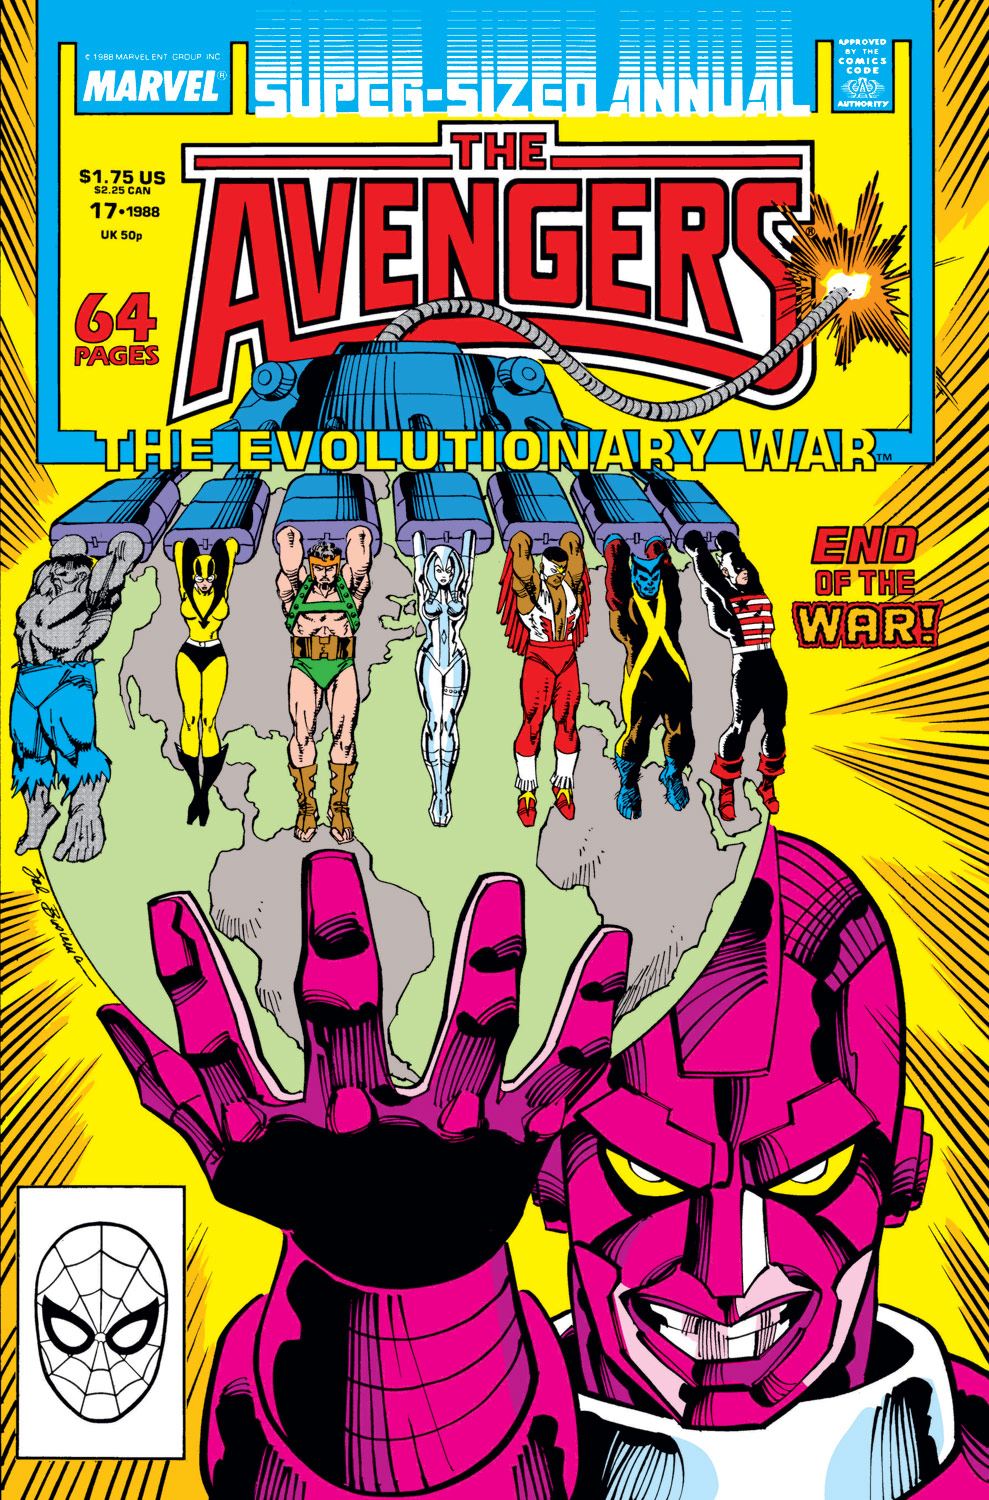 Avengers Annual (1967) #17